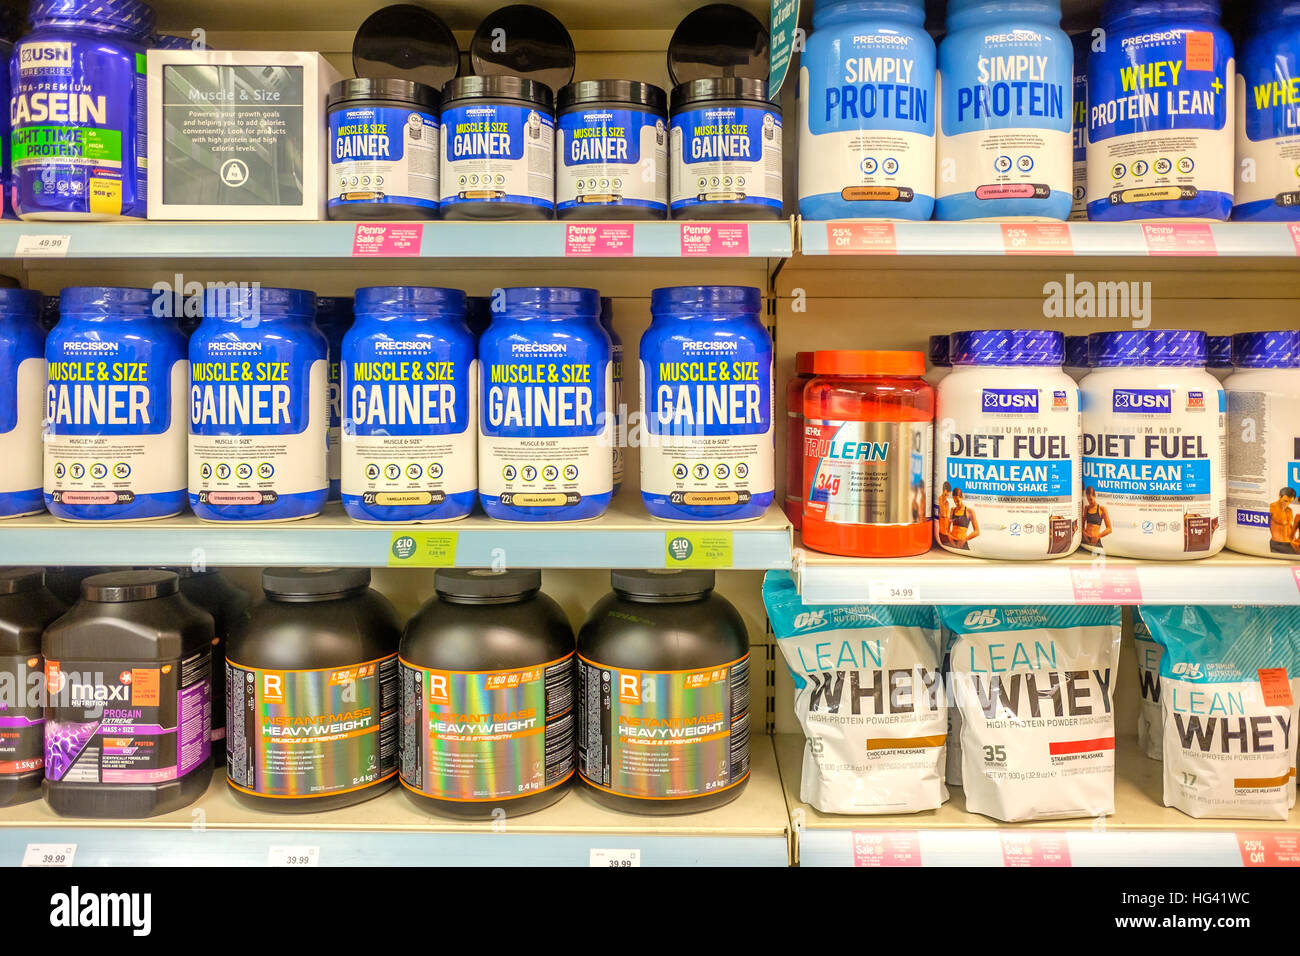 Weight Training Supplements in Holland and Barrett Stock